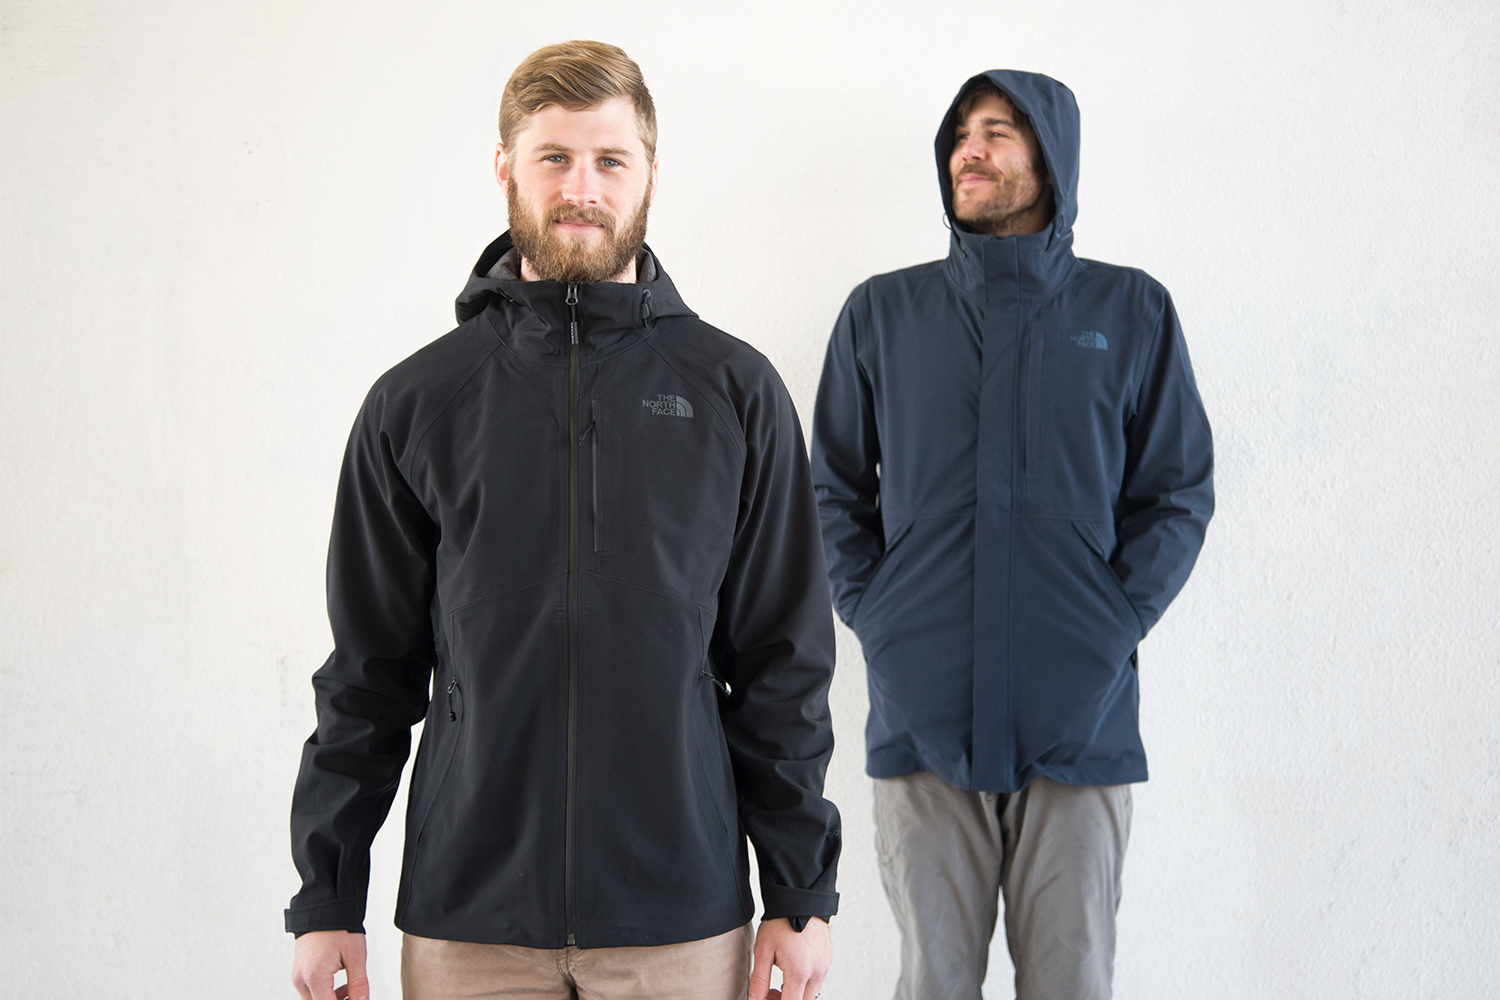 570e891d6d Review  The North Face  First Fully-Waterproof Softshell Rain Jacket ...